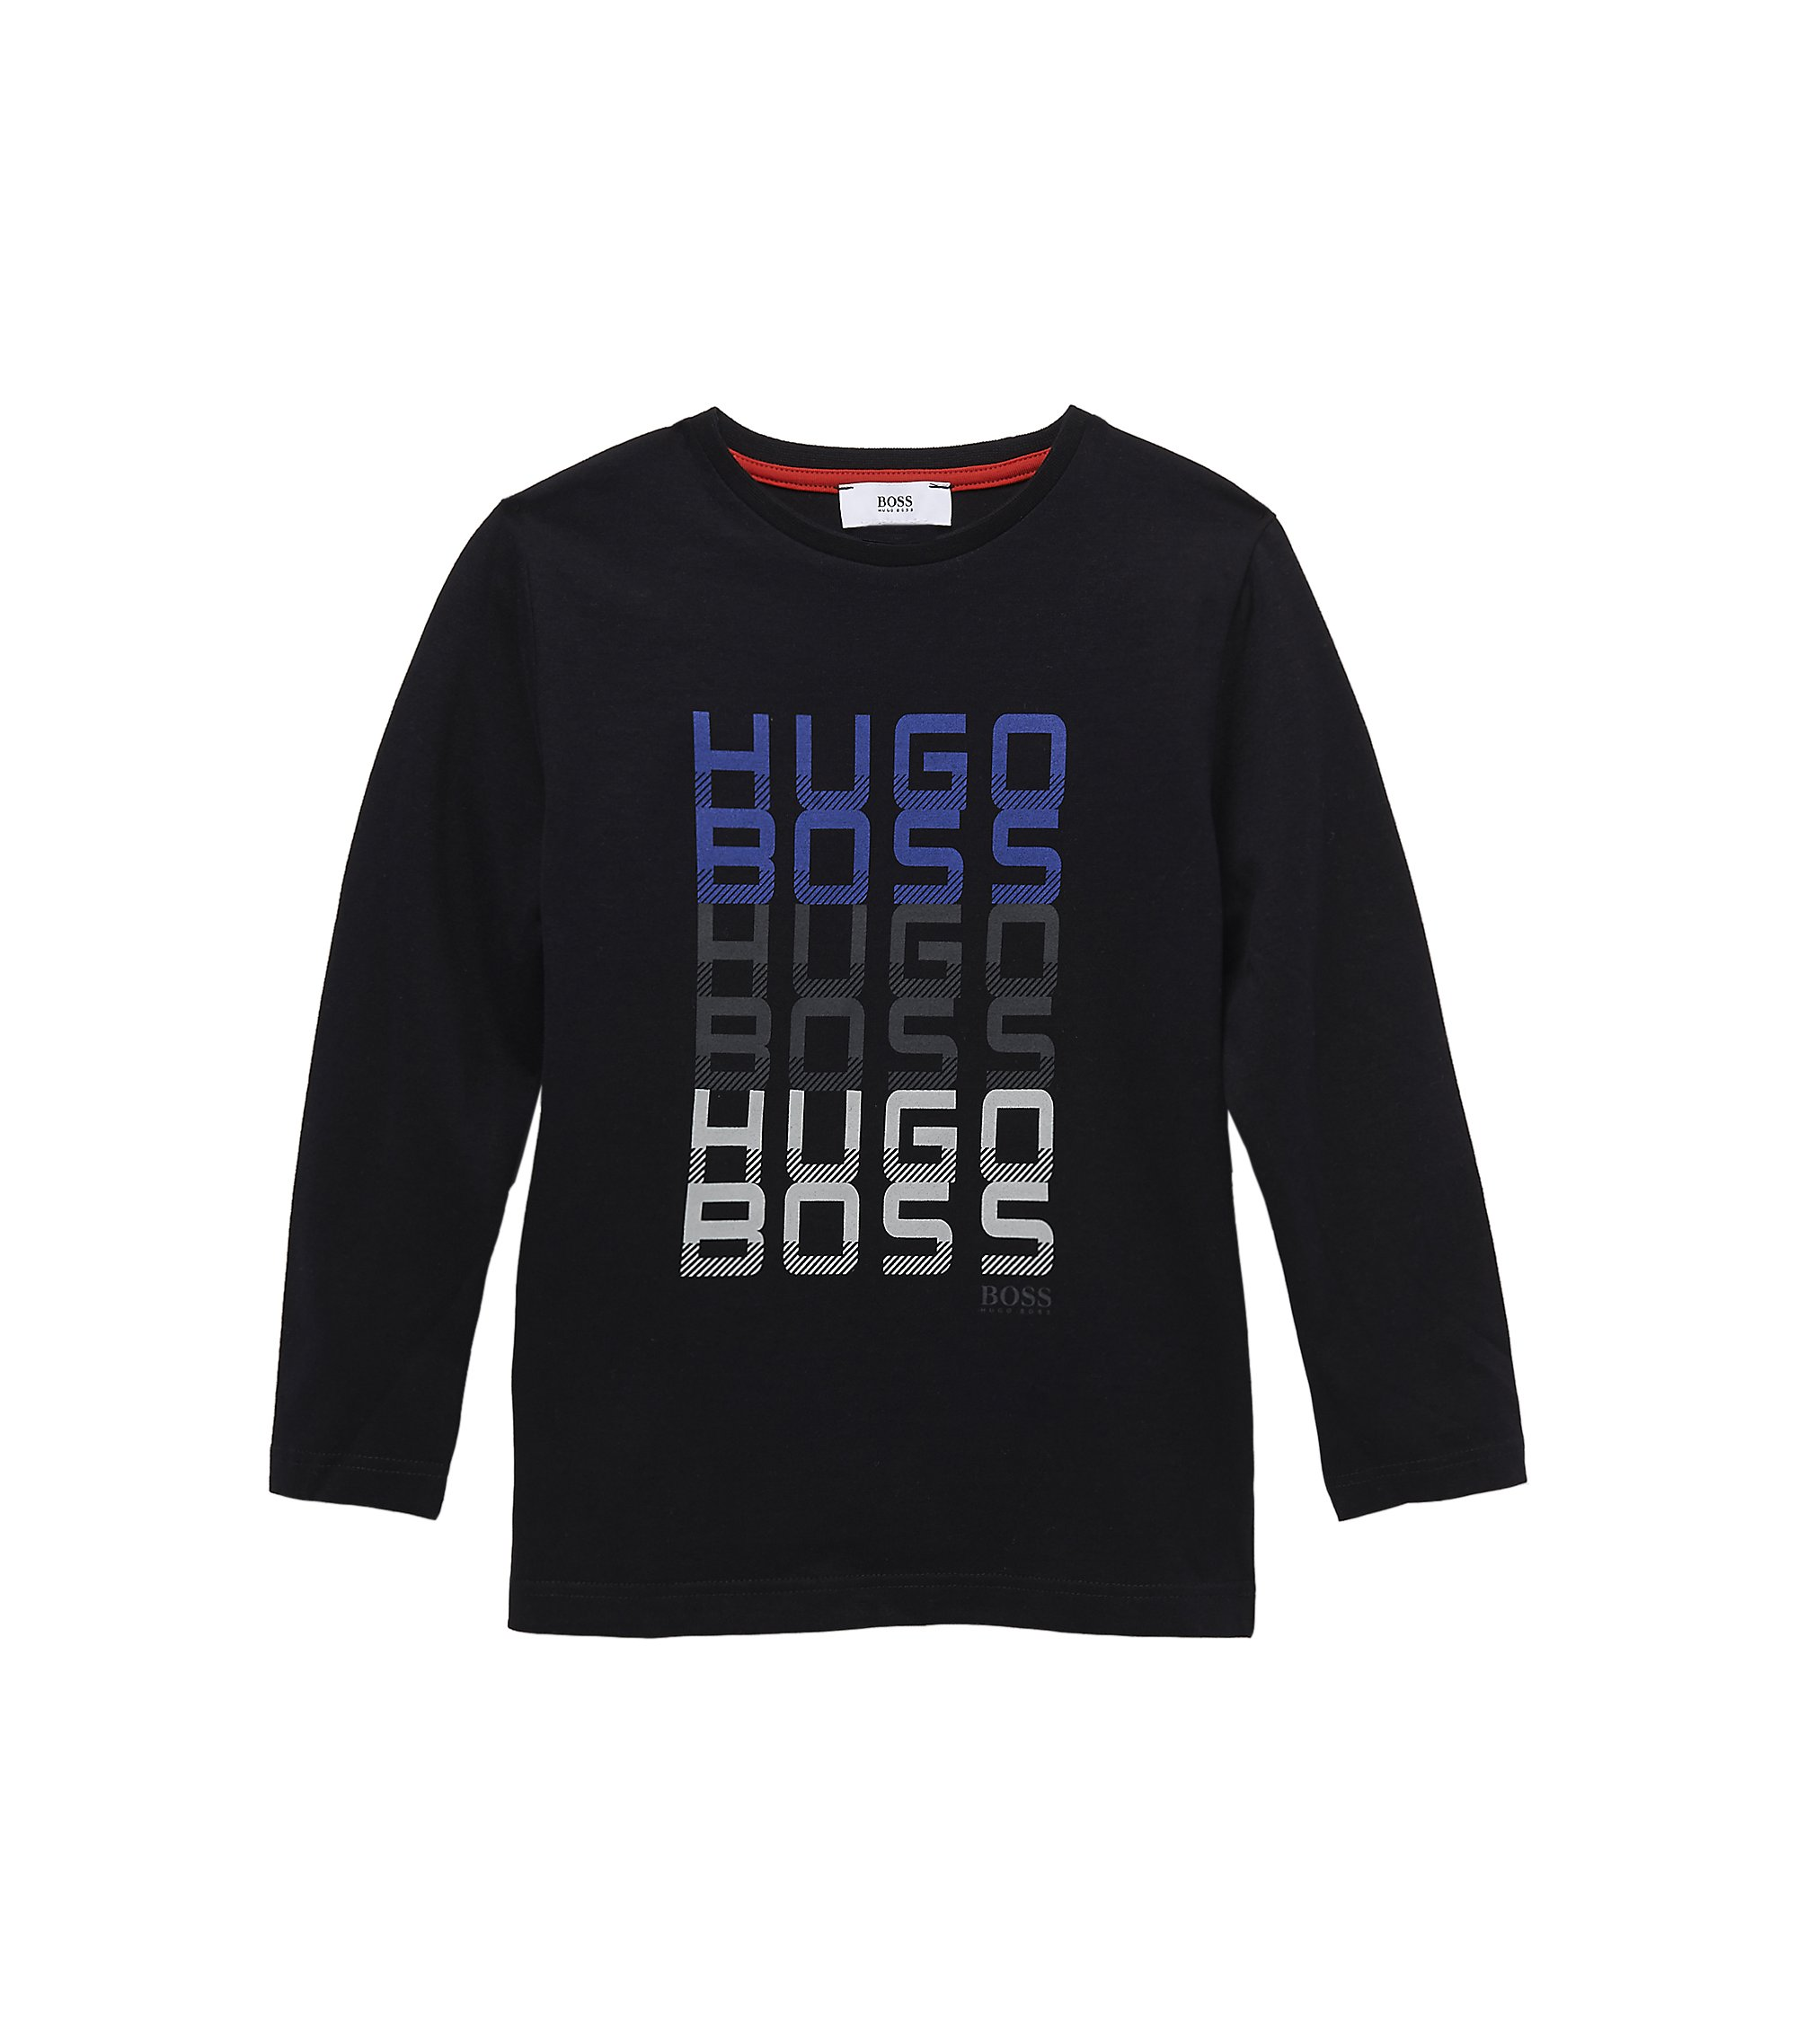 'J25589' | Boys Long-Sleeved Cotton Crewneck Graphic T-Shirt, Black